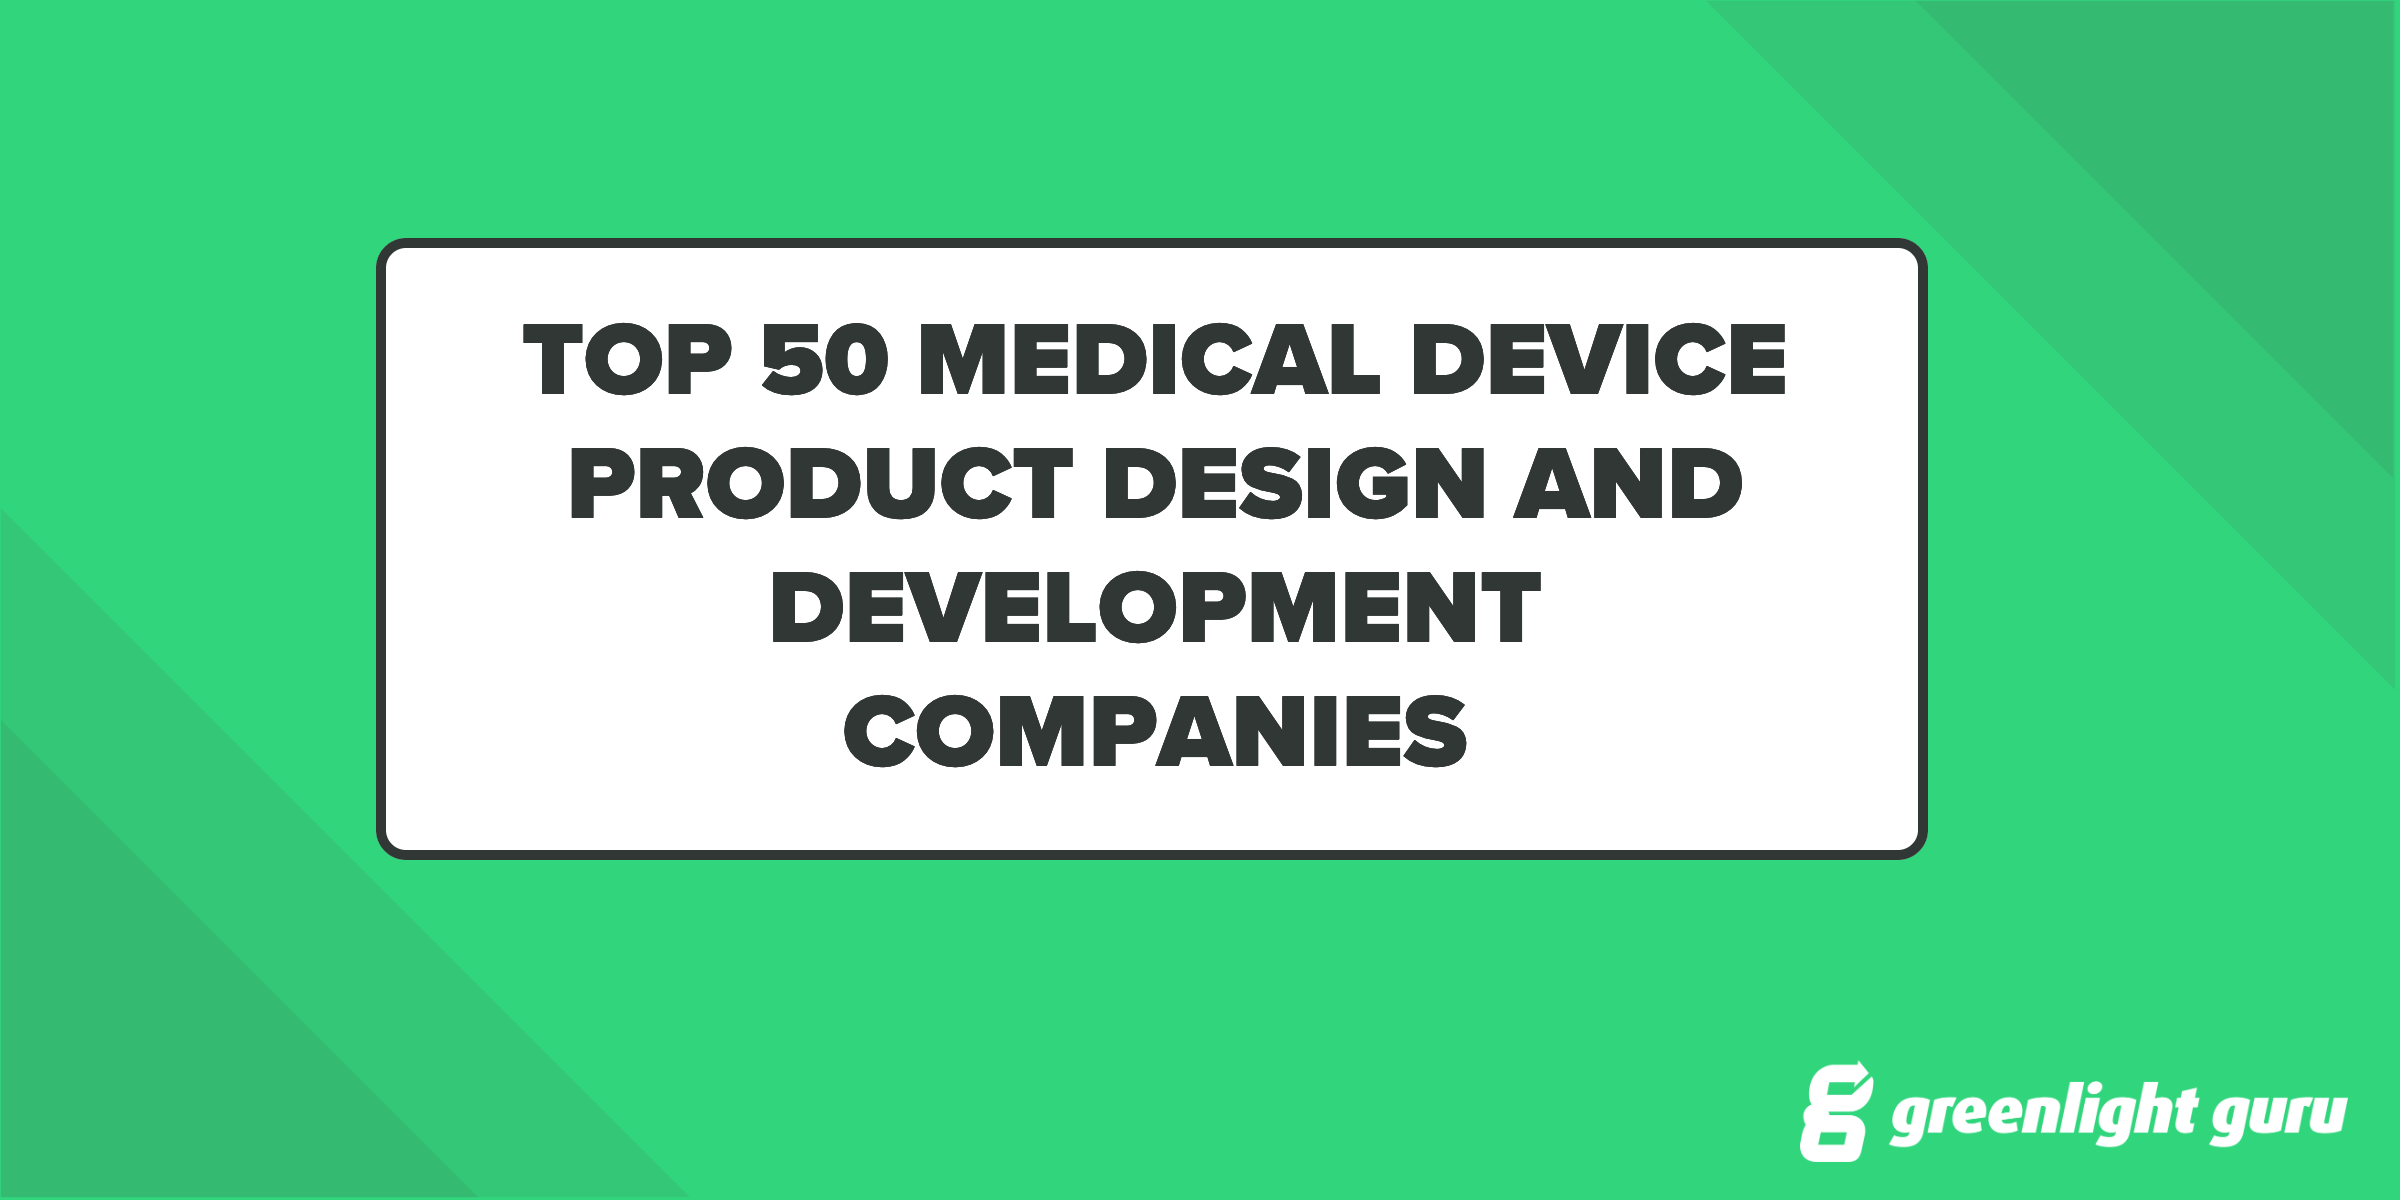 Top 50 Medical Device Product Design and Development ... Small Clical House Plans on bunkhouse plans, log home plans, small home blueprints, small houses on trailers, small home design, small dogs, retirement home plans, small cottages, mobile home plans, floor plans, small houses on wheels, boat plans, chicken coop plans, small appliances, small dream homes, home remodel plans, custom home plans, small prefab houses, luxury home plans,